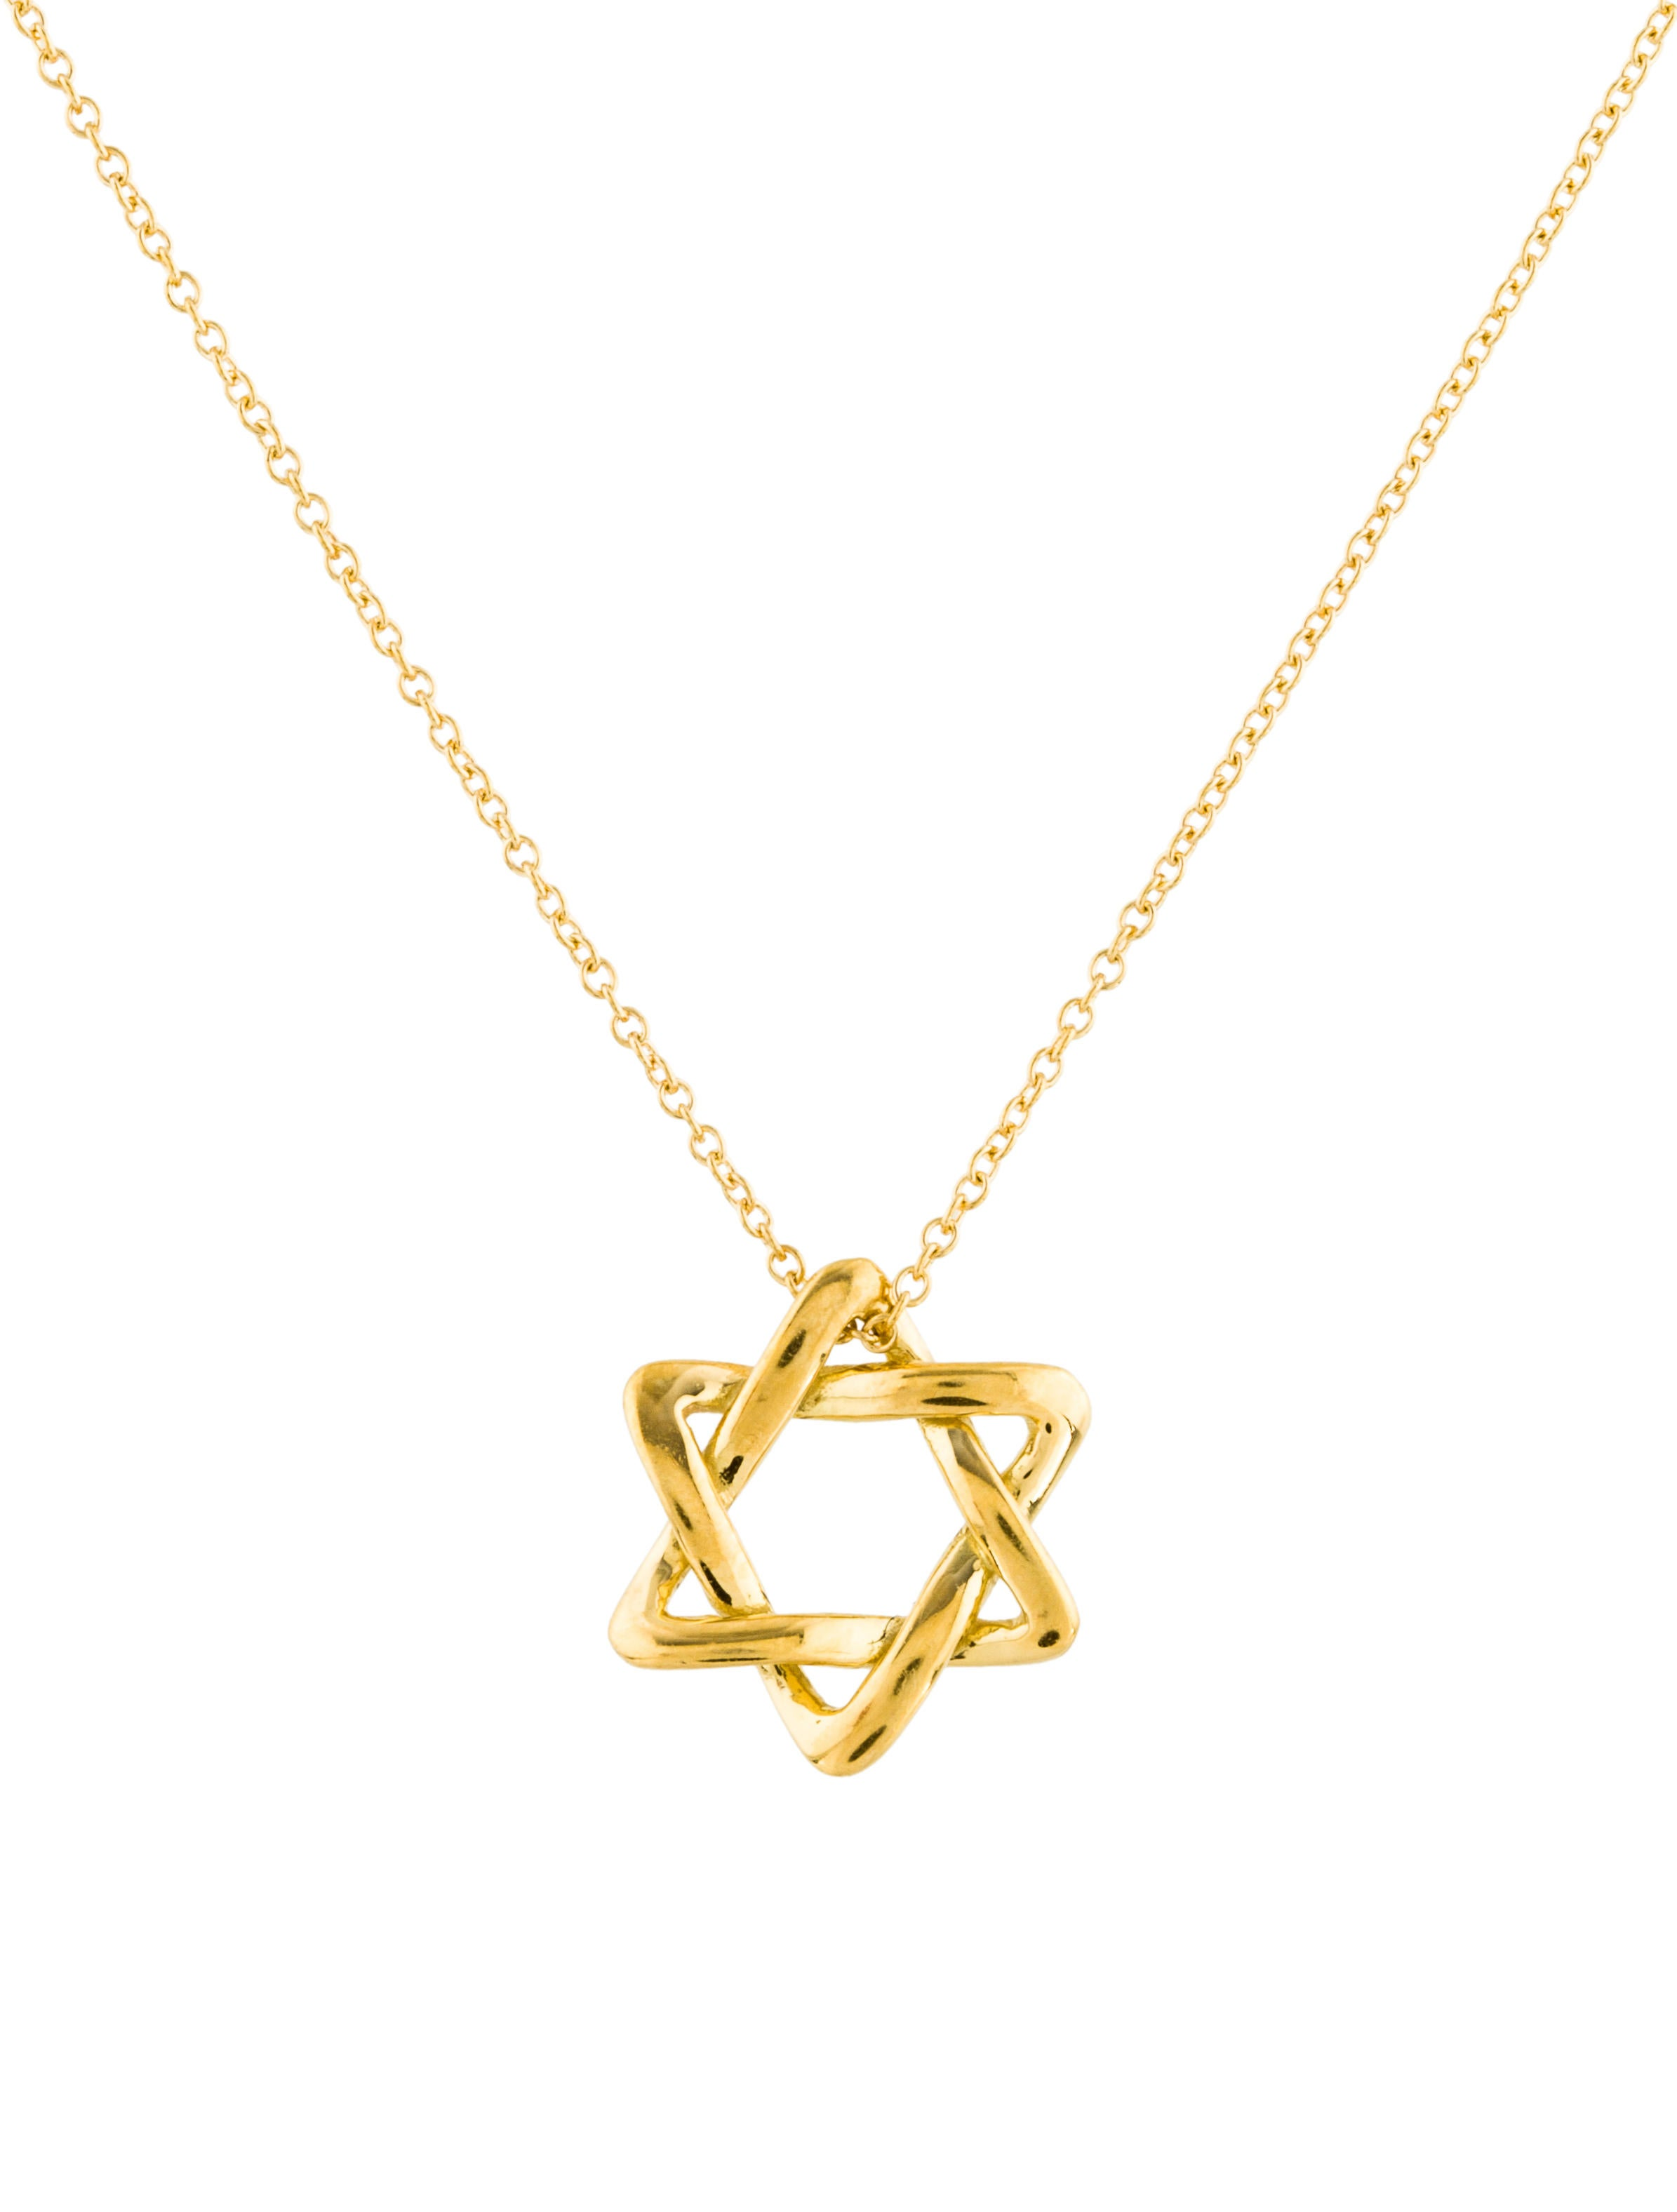 Tiffany co 18k star of david pendant necklace for Star of david necklace mens jewelry